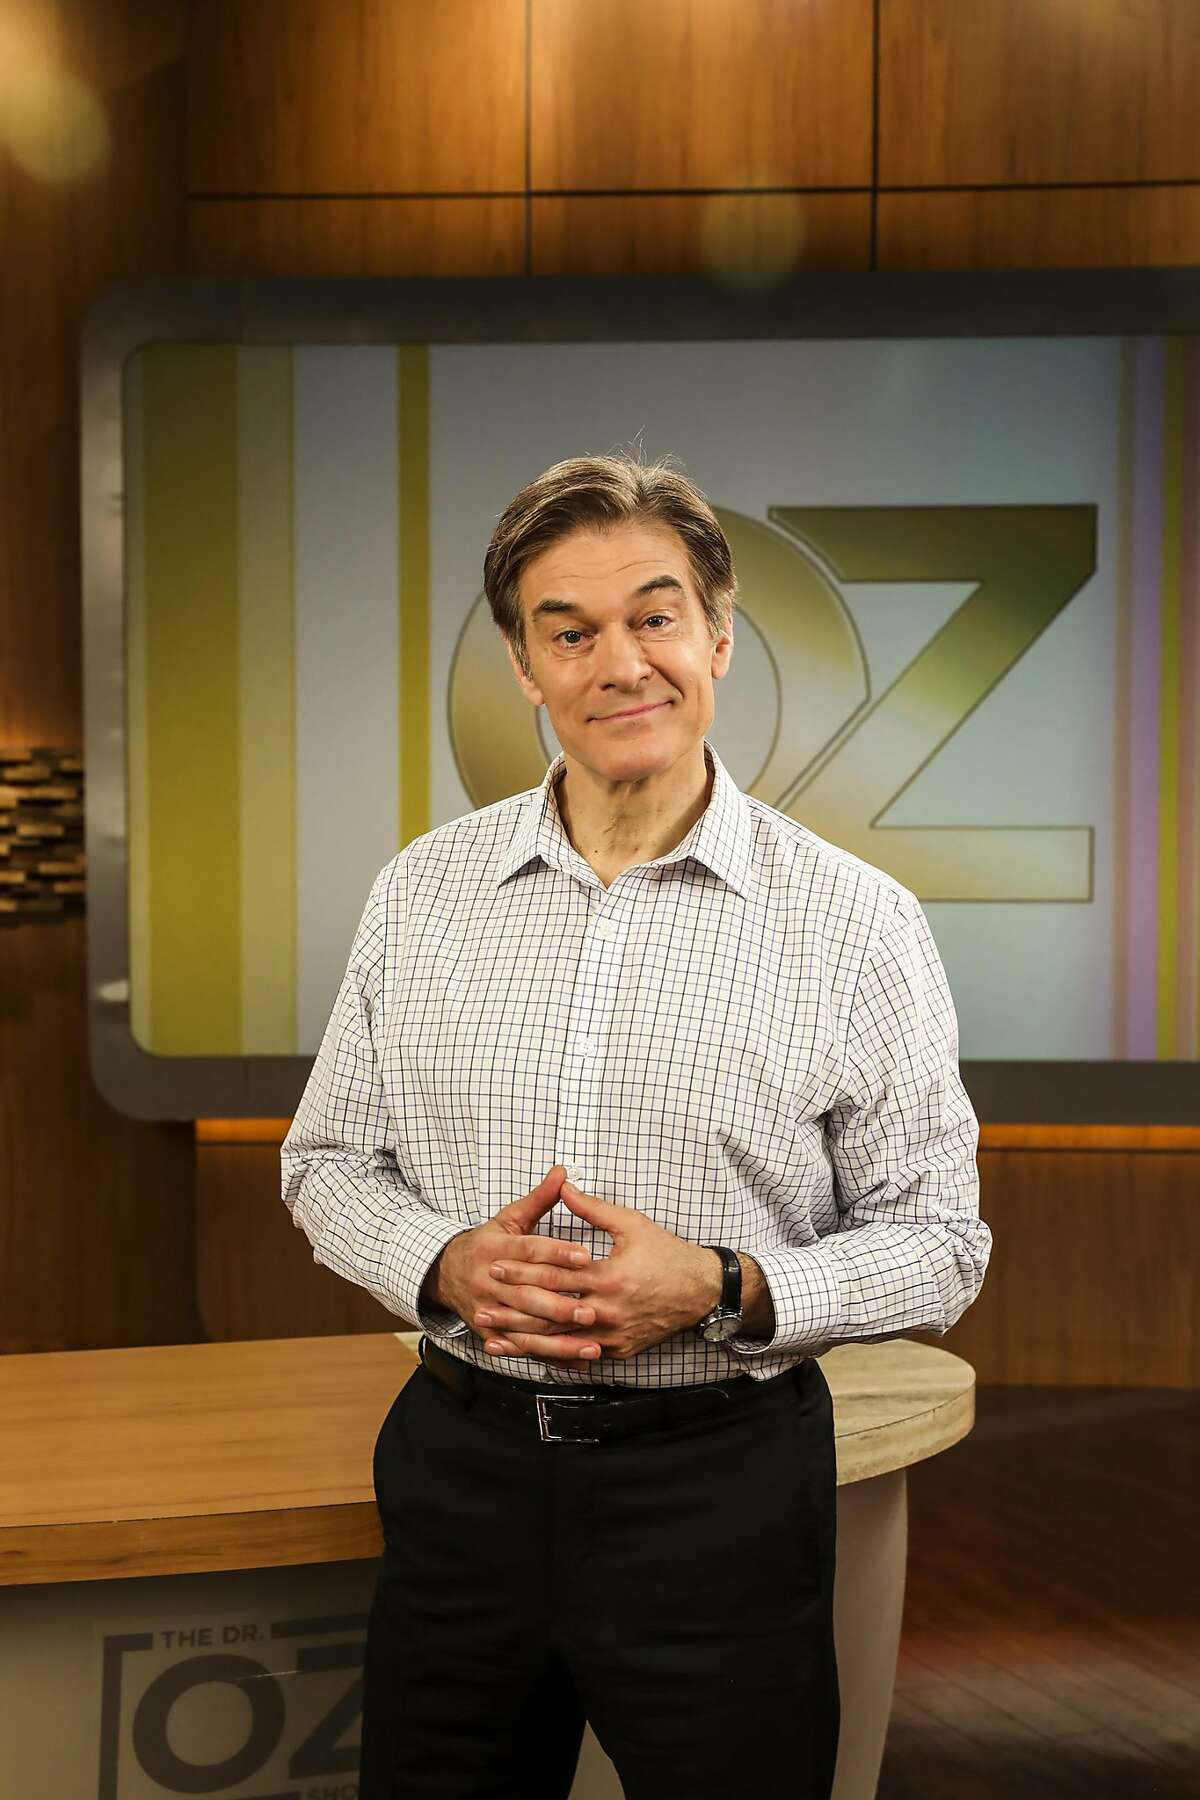 Dr. Mehmet Oz, host and producer of